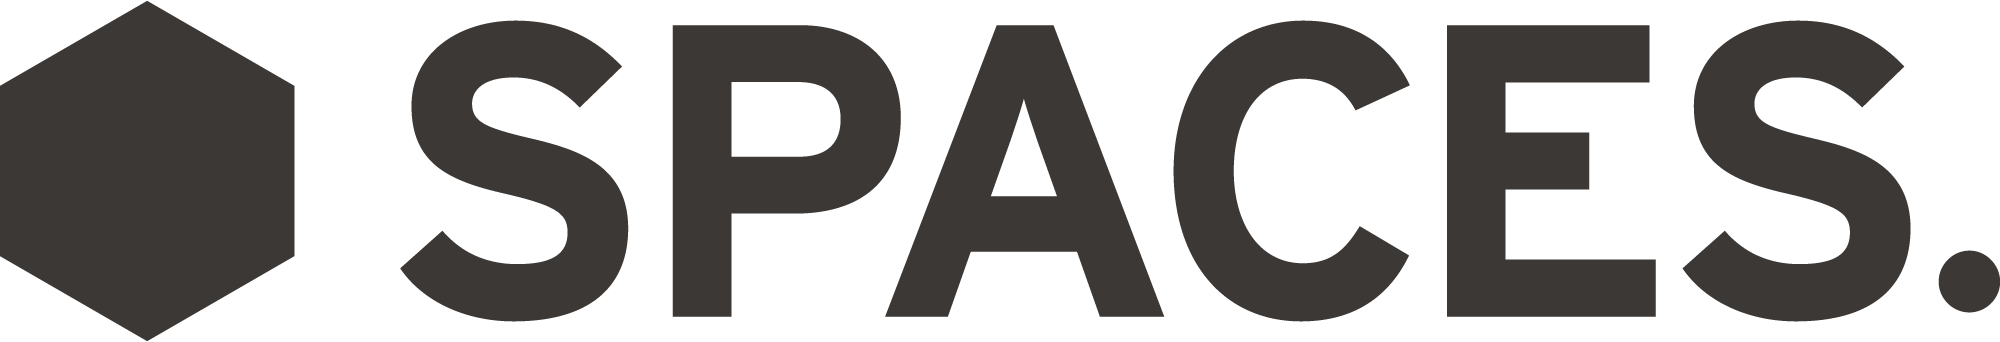 spaces-logo